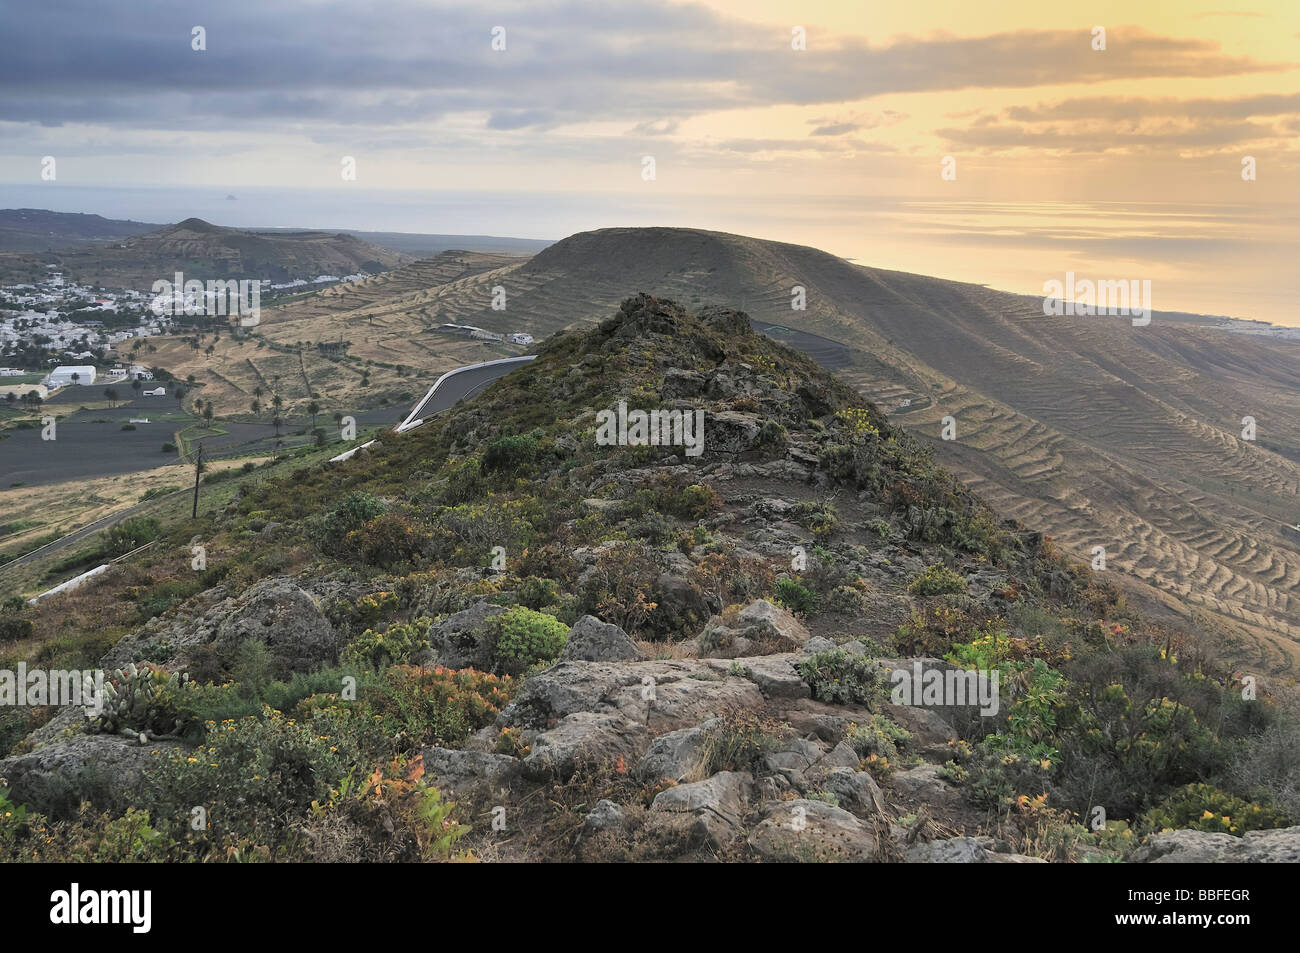 view of Lanzarote Island - Stock Image